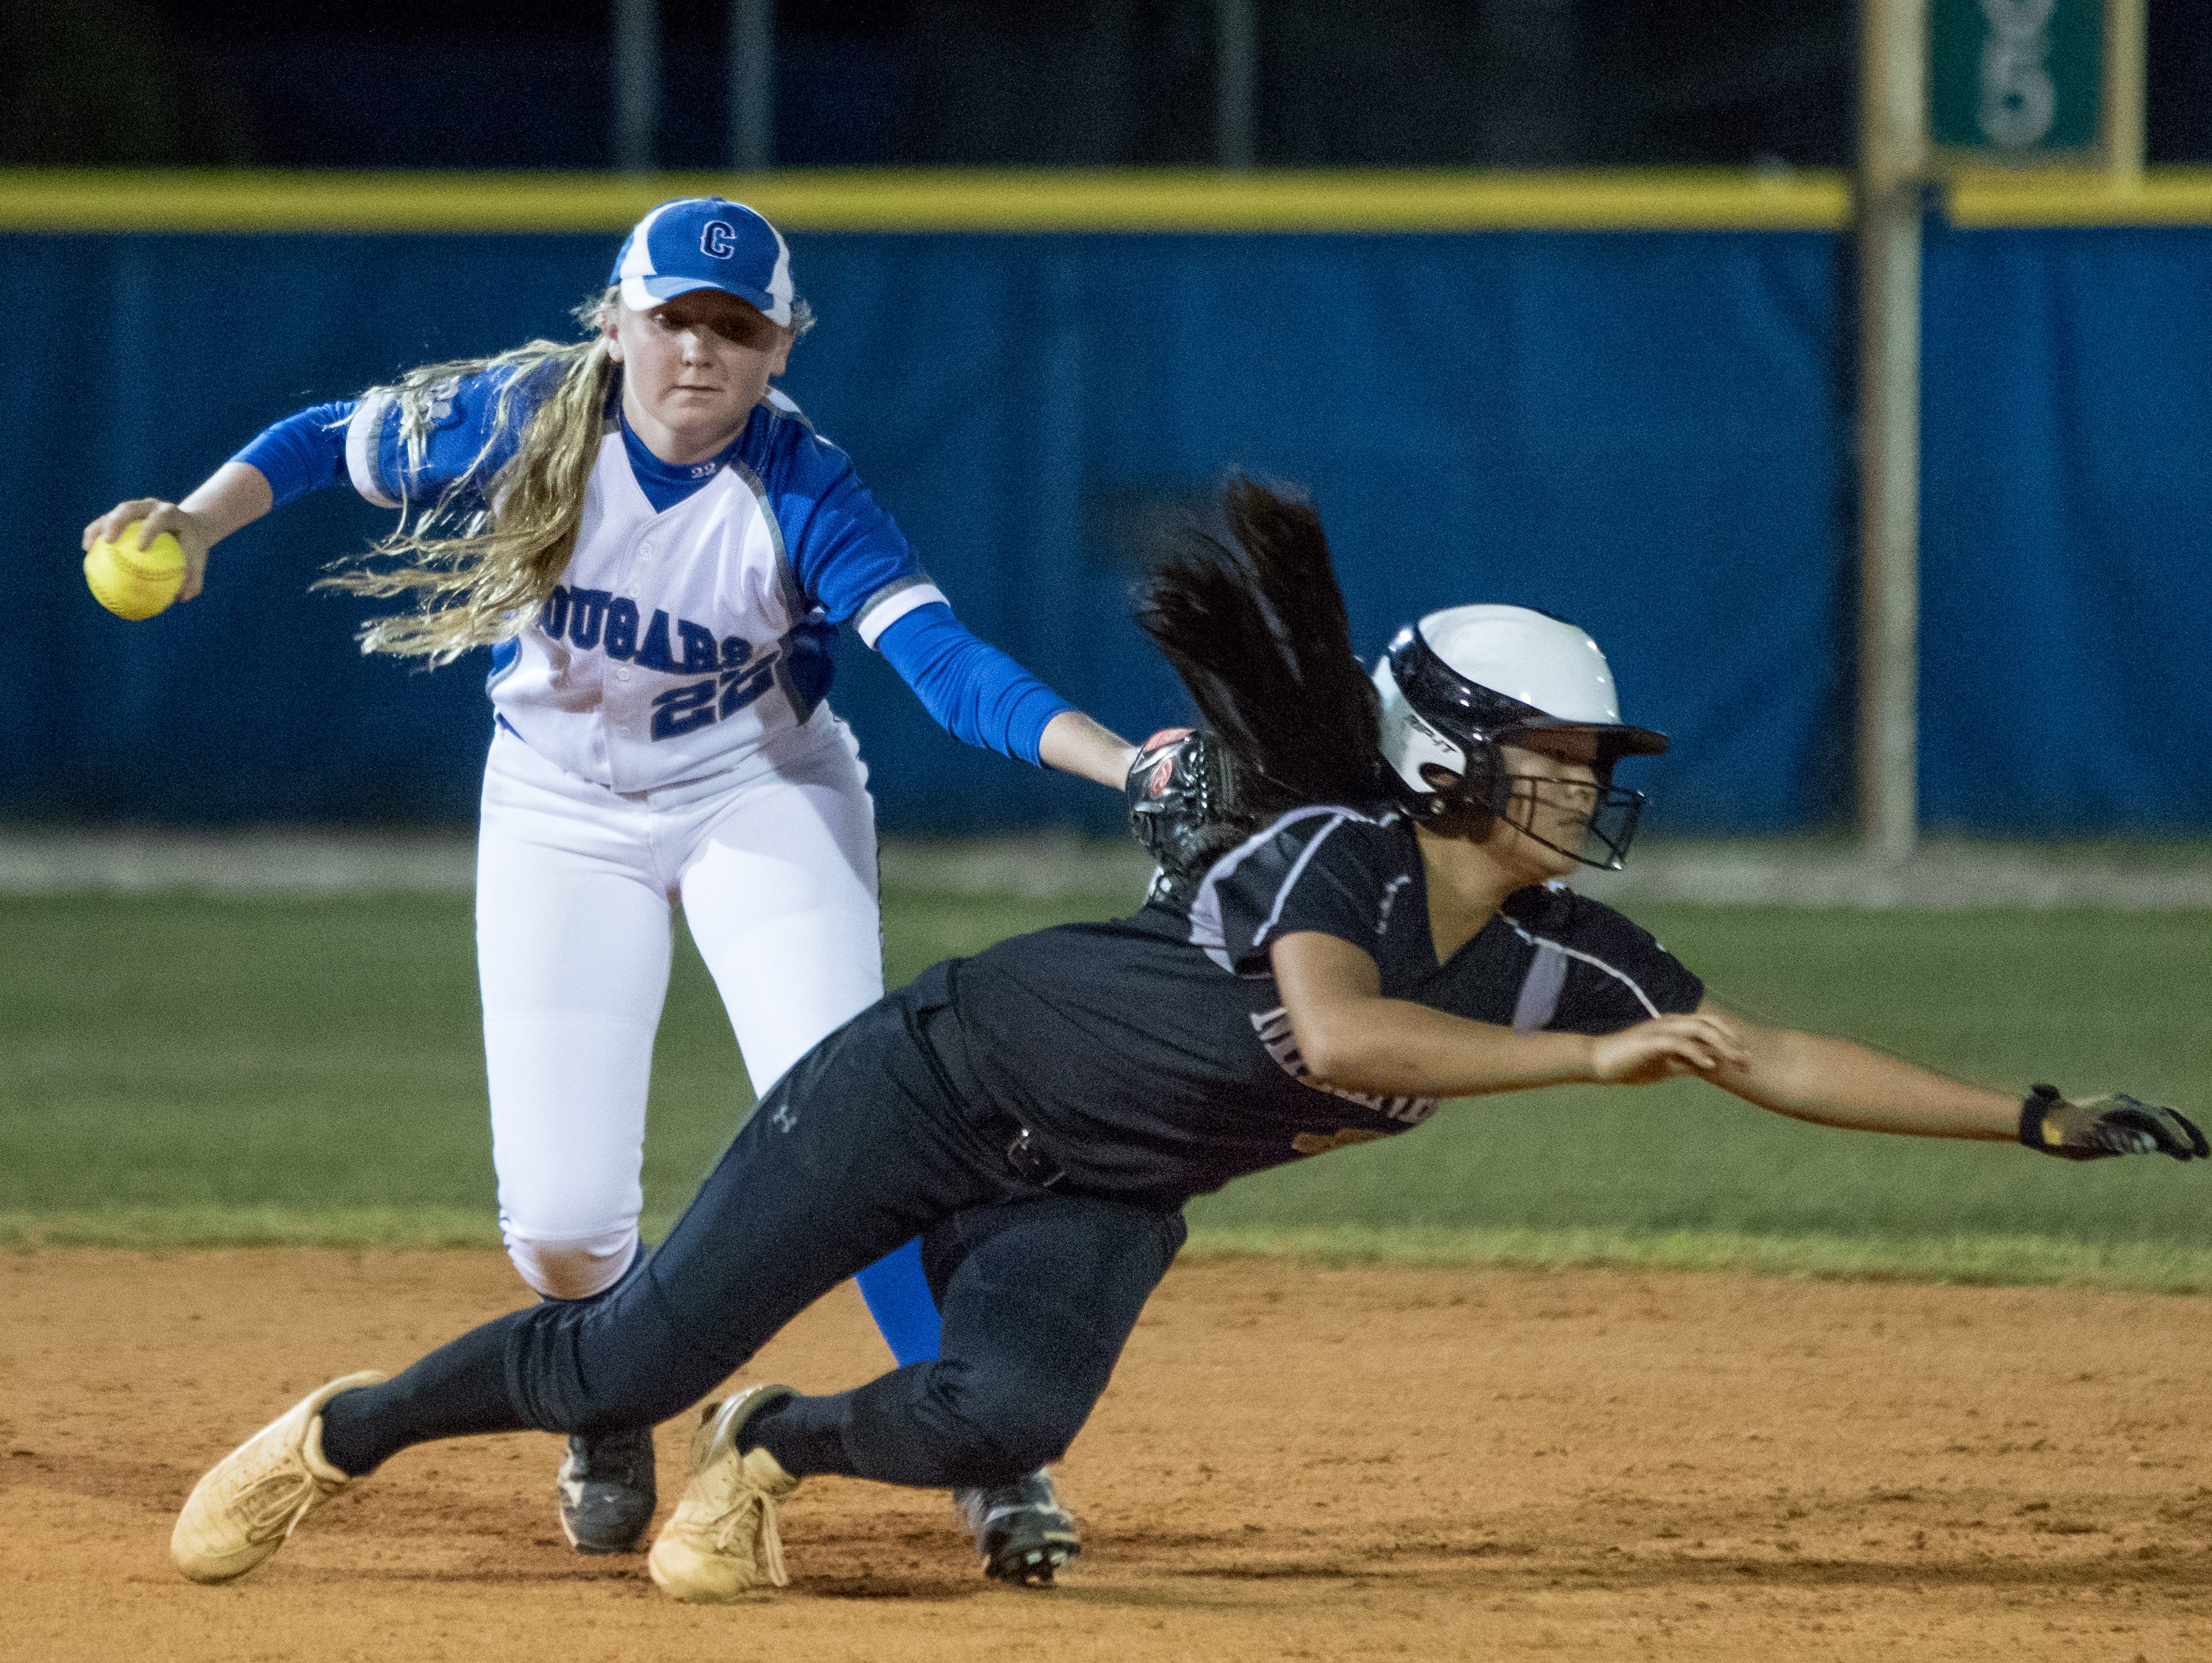 Mariner's only run scores as Barron Collier H.S.'s shortstop Megan Scoone (22) tags Mariner H.S.'s Abby Love (8) with a balless glove as she dives back to second base during the class 6A regional softball quarterfinal game at Barron Collier High School in Naples, FL on Wednesday, April 20, 2016. (Photo by Gregg Pachkowski/Special to the Daily News)